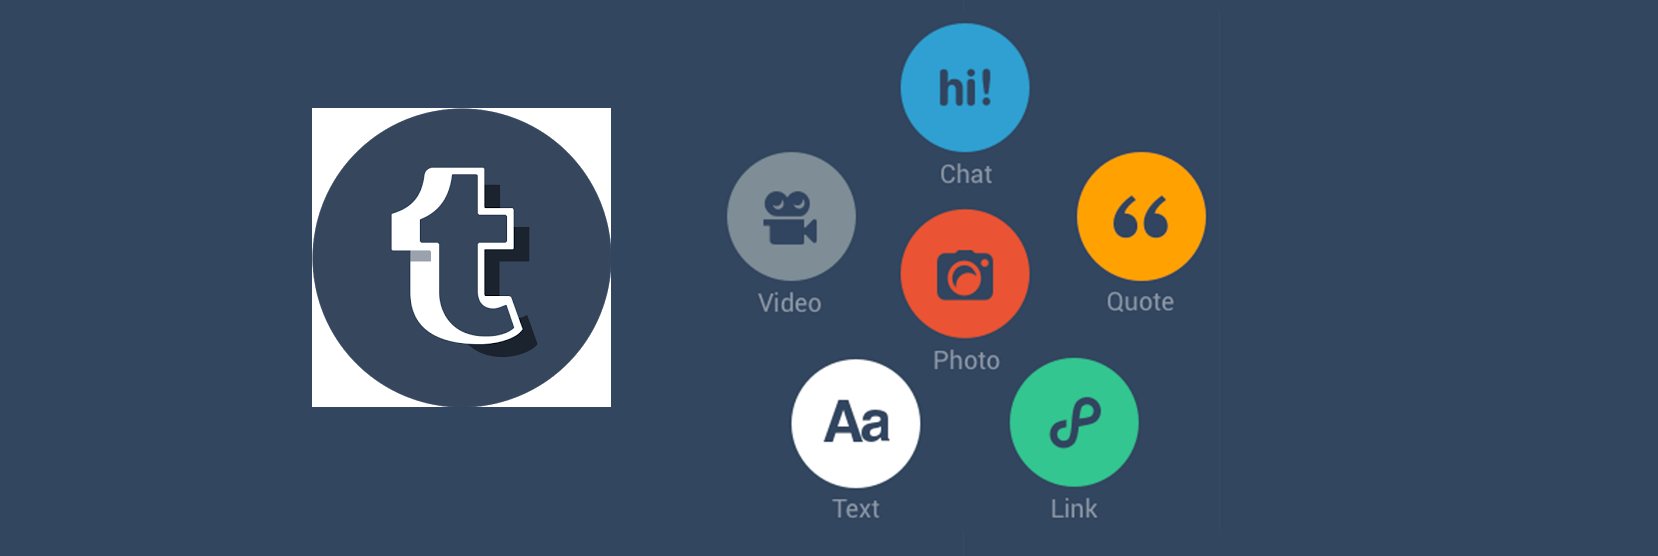 Tumblr Content Management System (CMS)